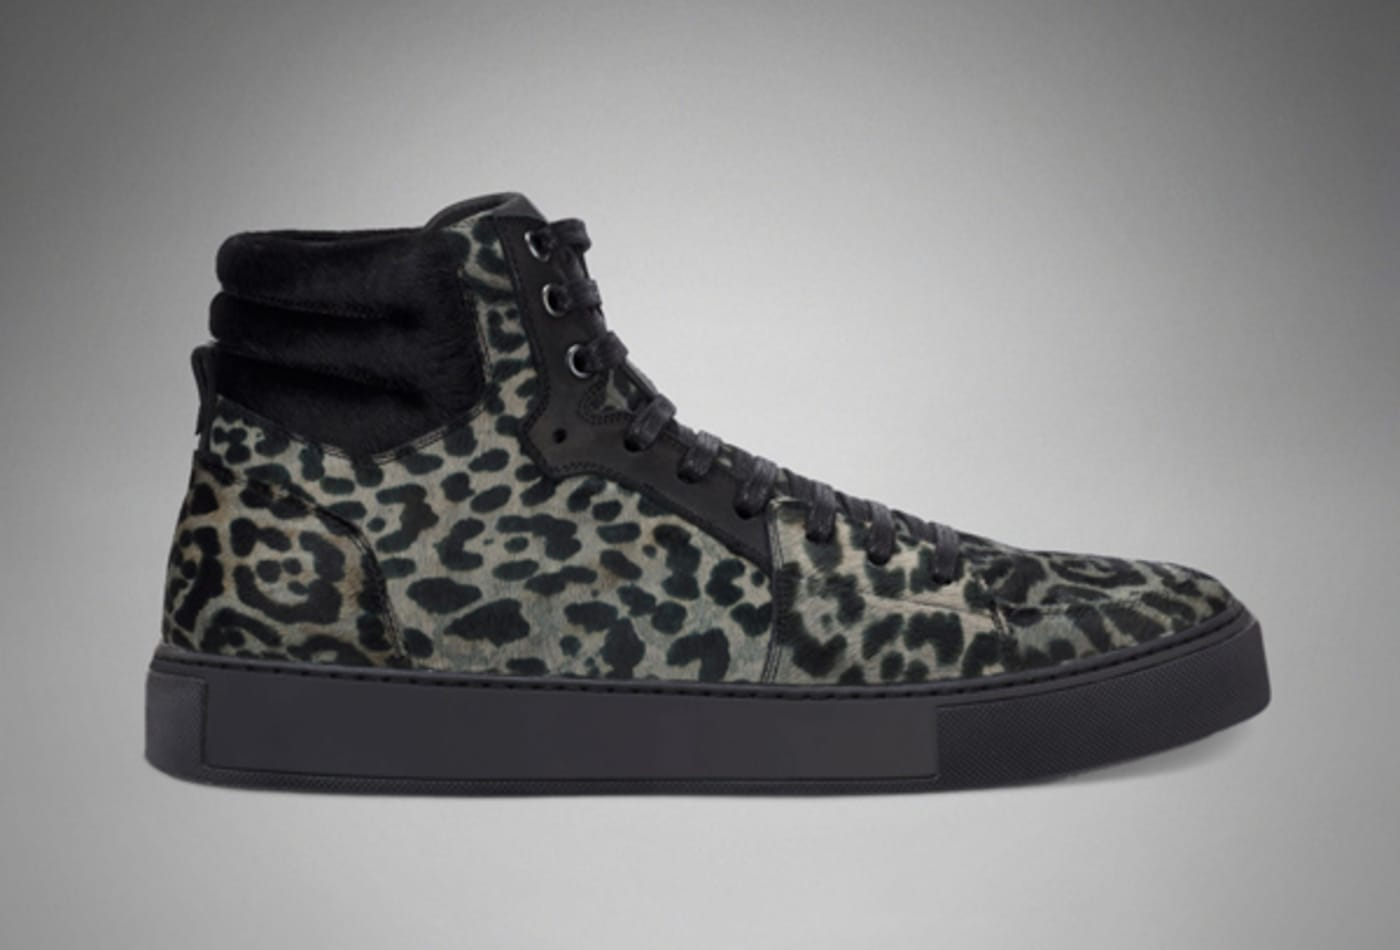 luxury-gifts-2012-ysl-hightops.jpg